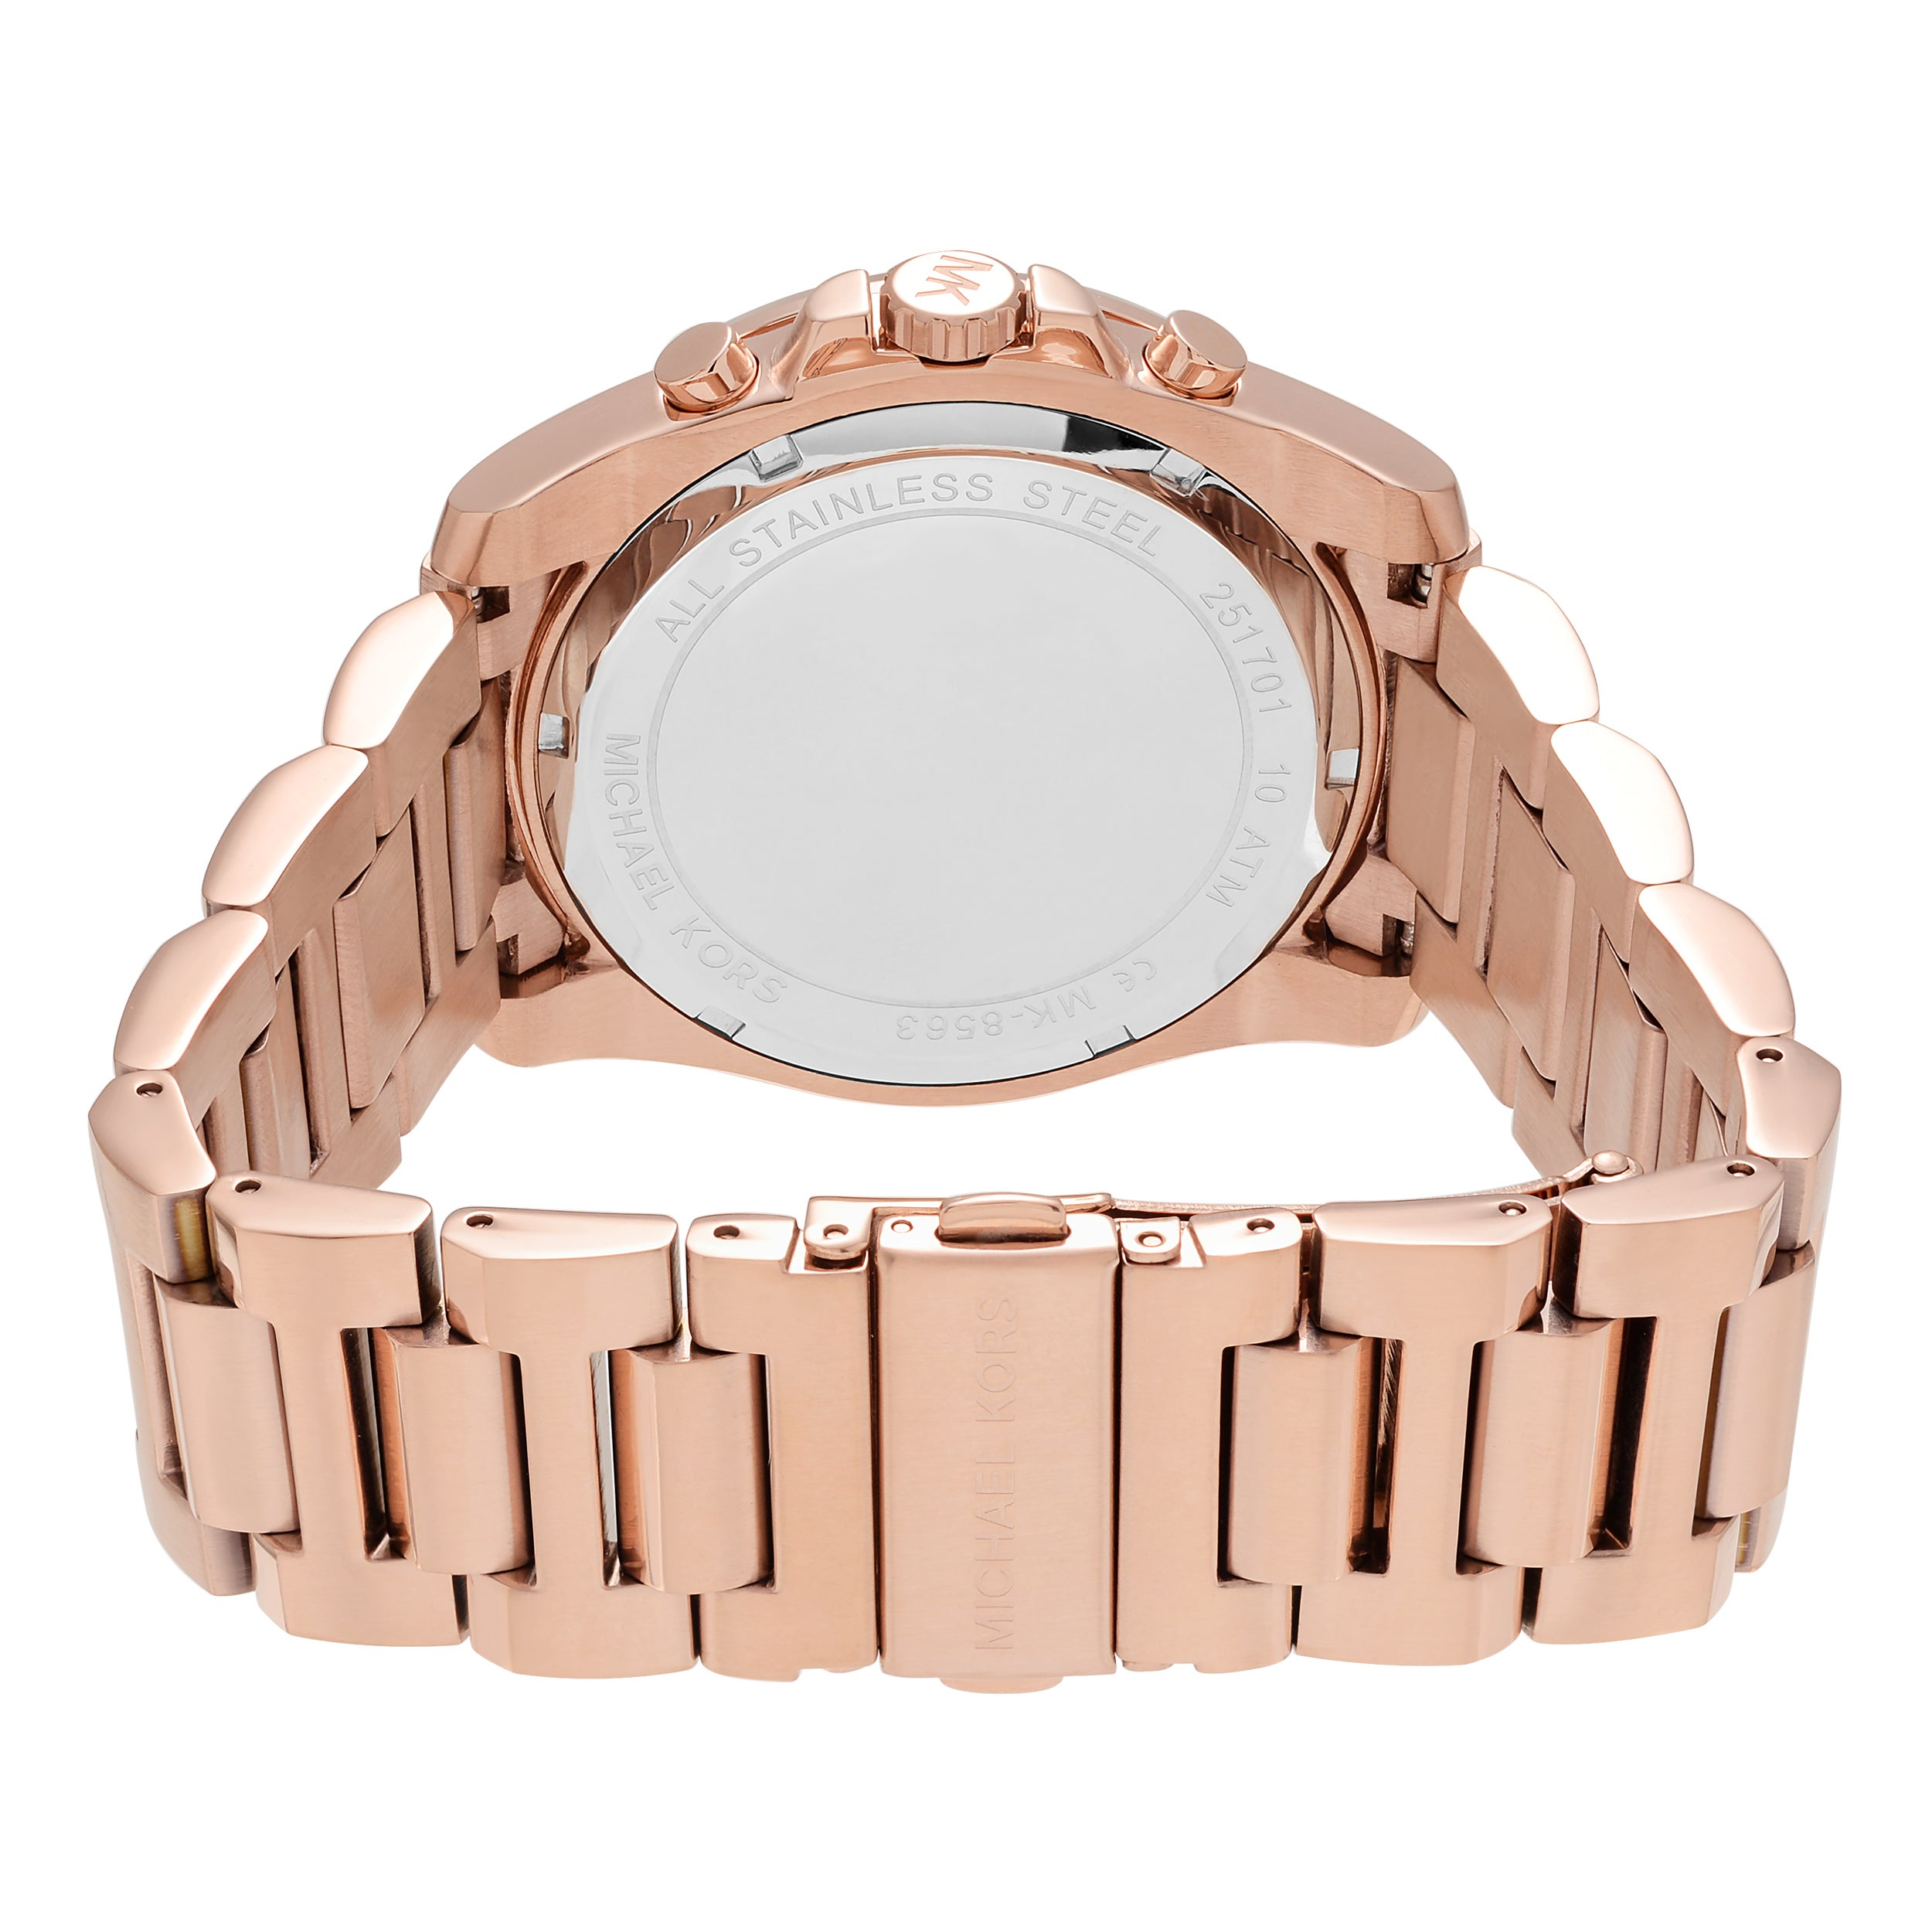 69a8f03fade4 Shop Michael Kors Men s MK8563  Brecken  Rose Goldtone Stainless Steel Chronograph  Dial Link Bracelet Watch - Free Shipping Today - Overstock - 16306255